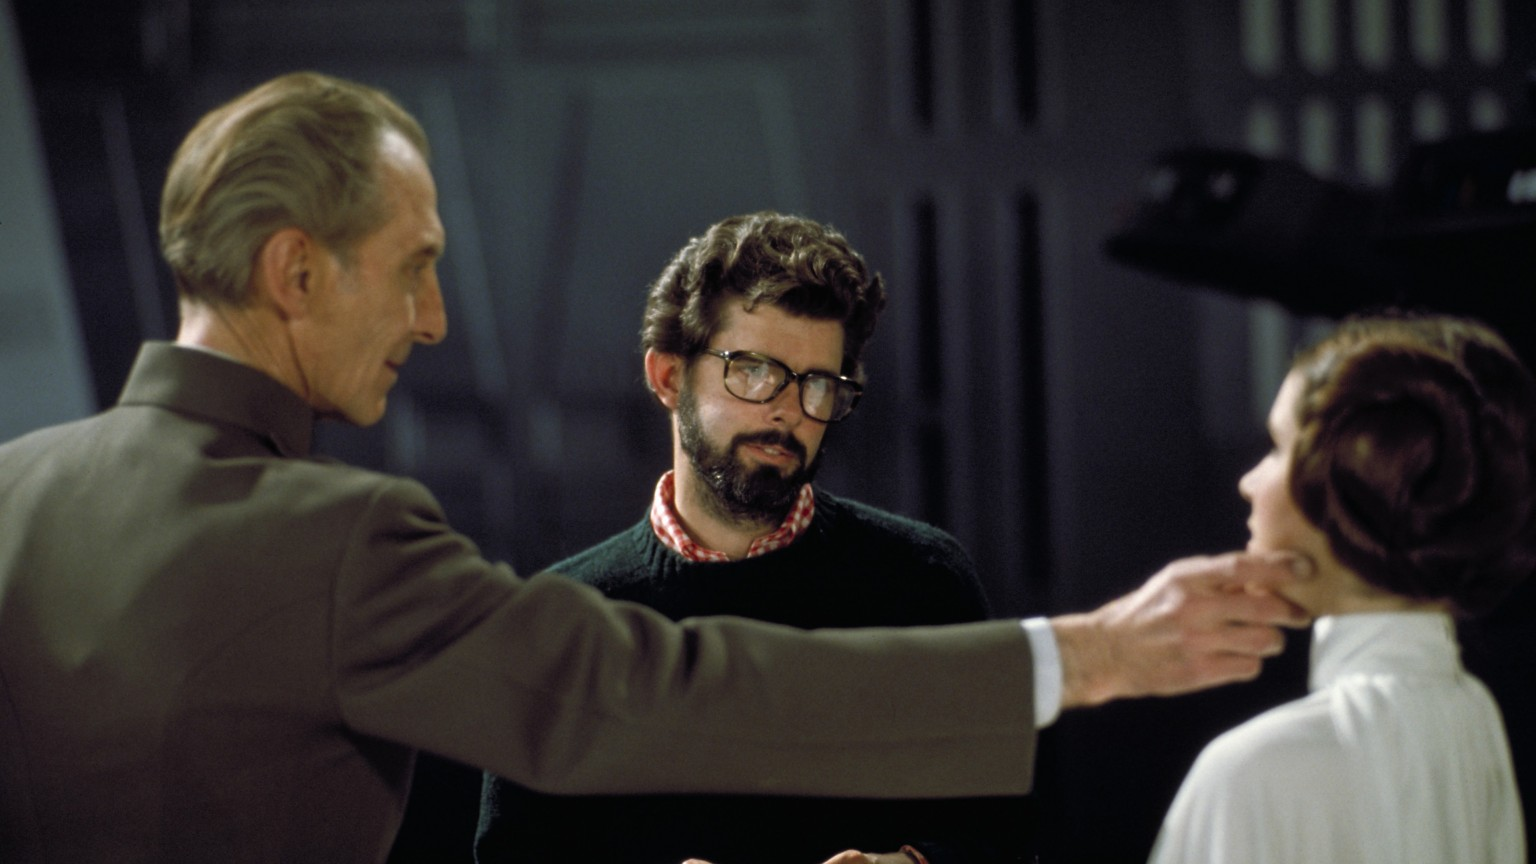 George Lucas on the set of Star Wars: A New Hope